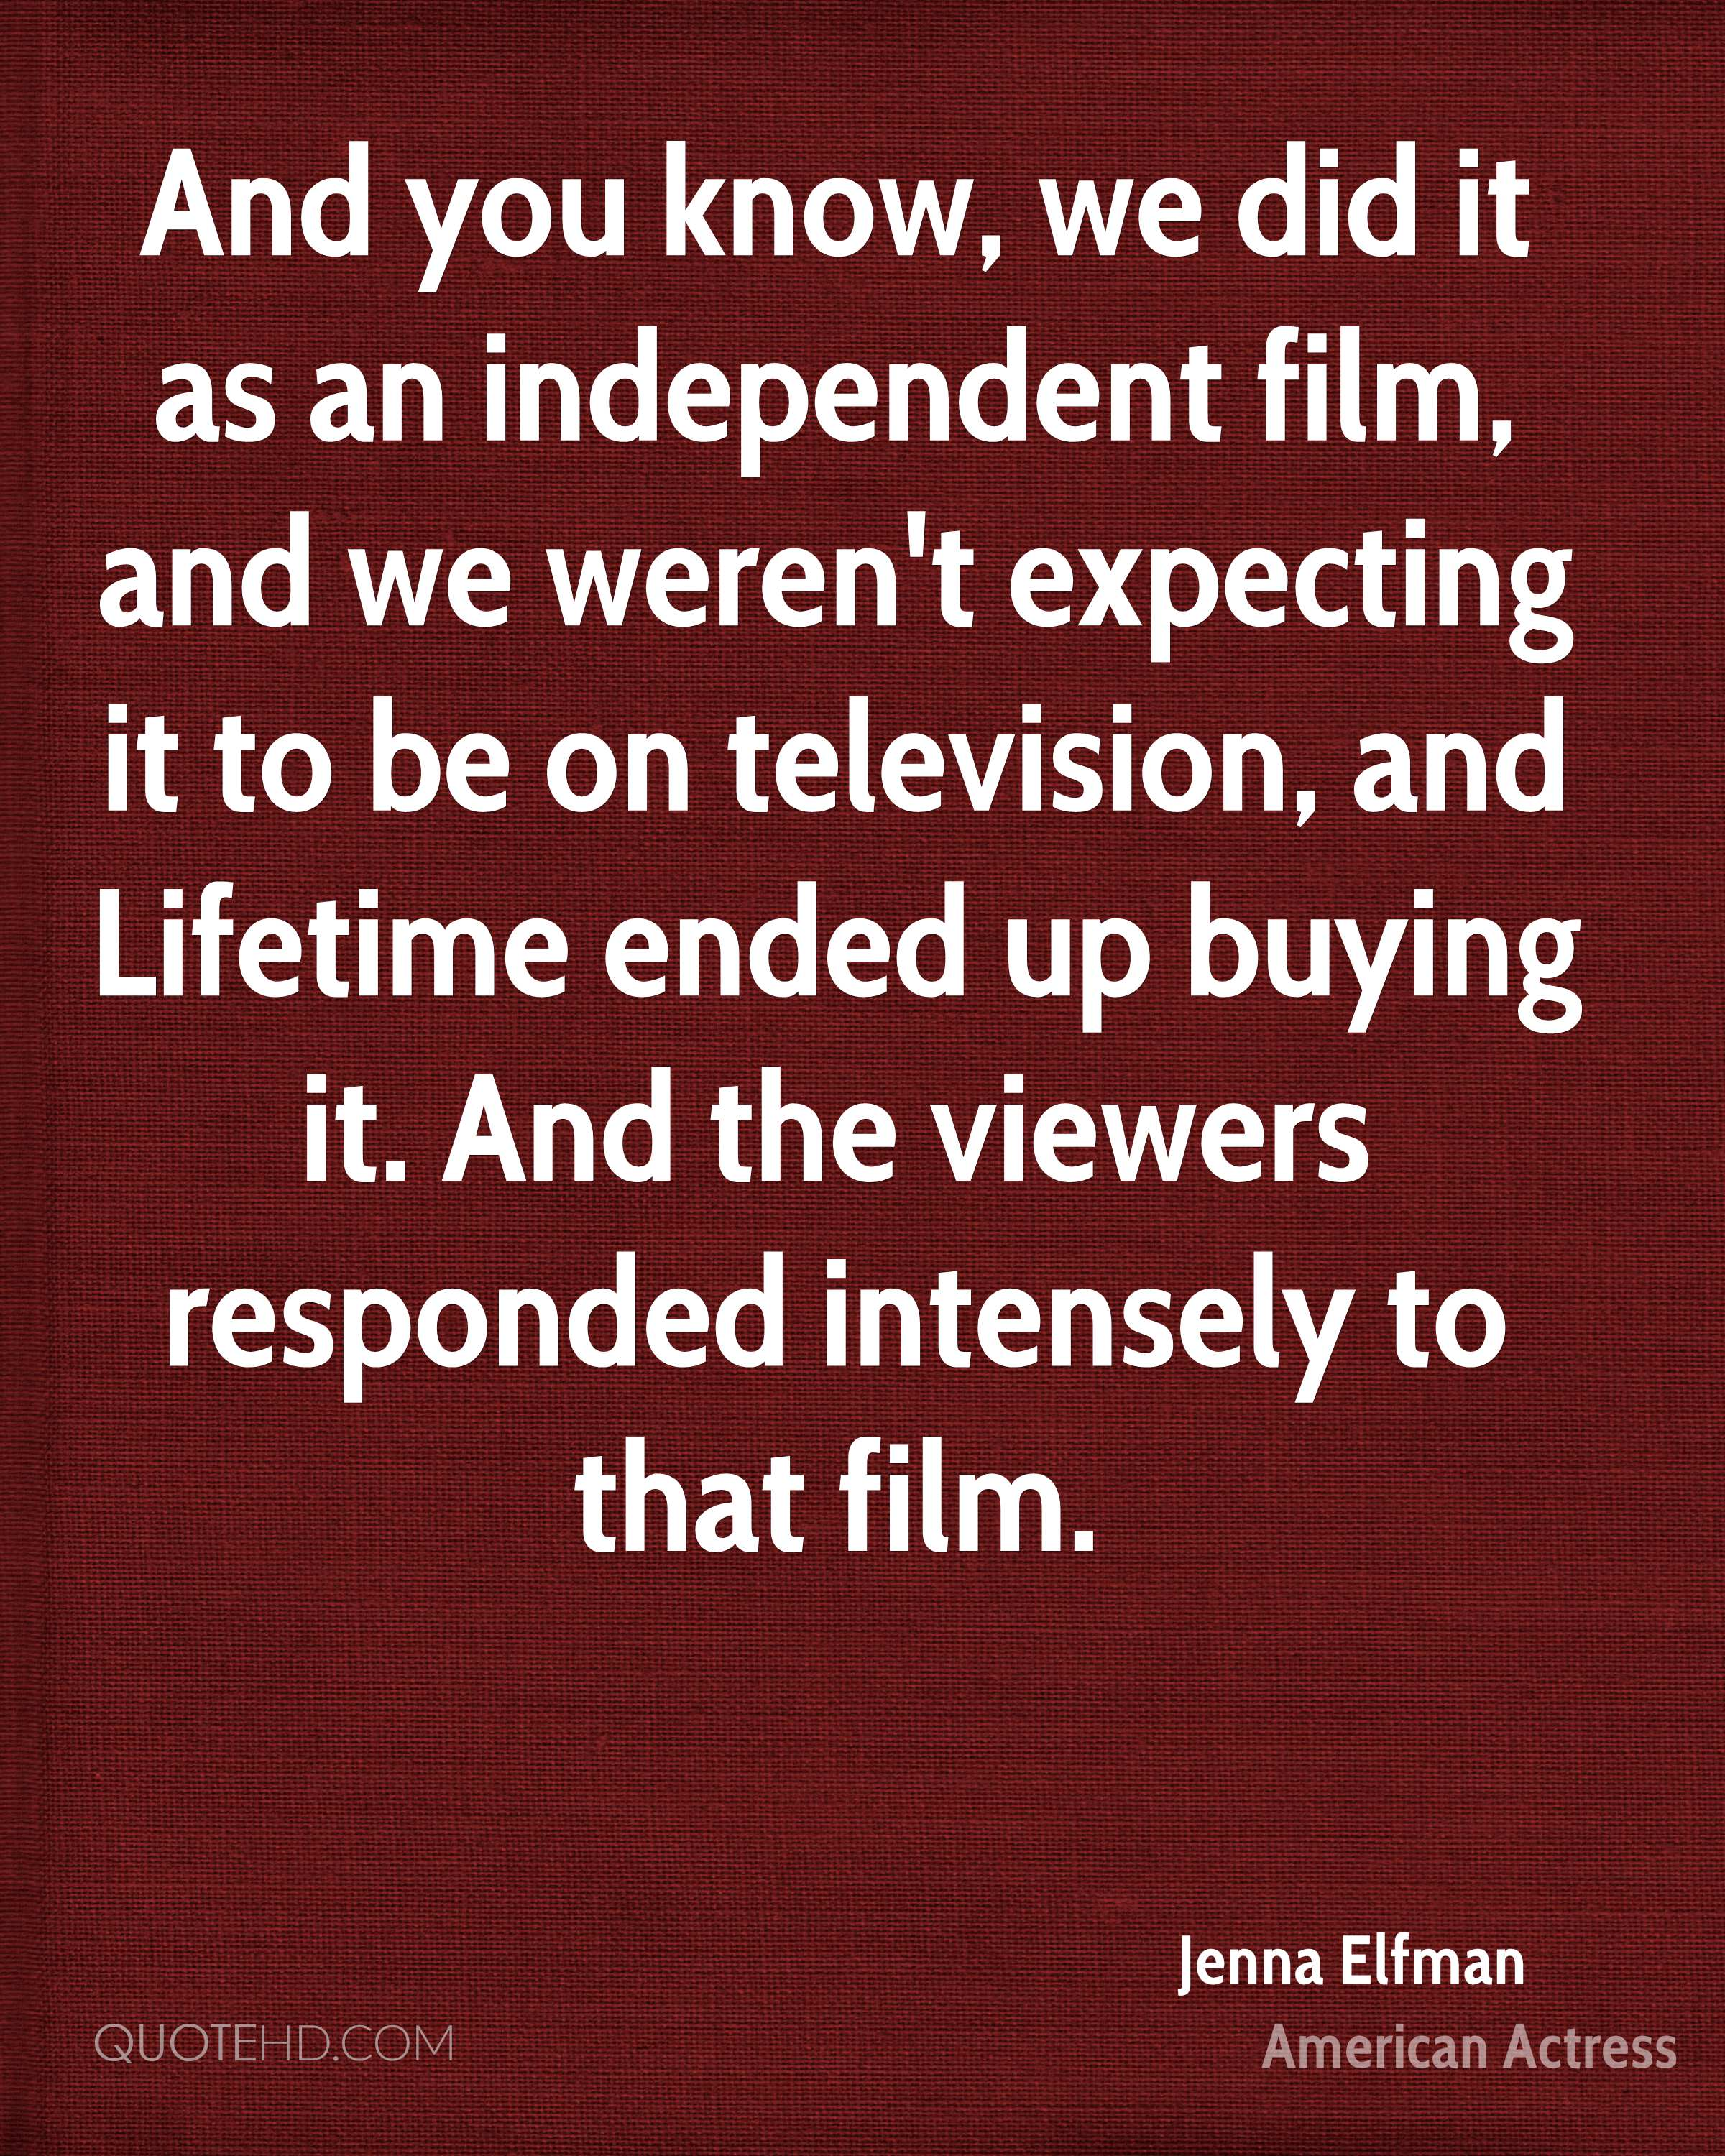 And you know, we did it as an independent film, and we weren't expecting it to be on television, and Lifetime ended up buying it. And the viewers responded intensely to that film.